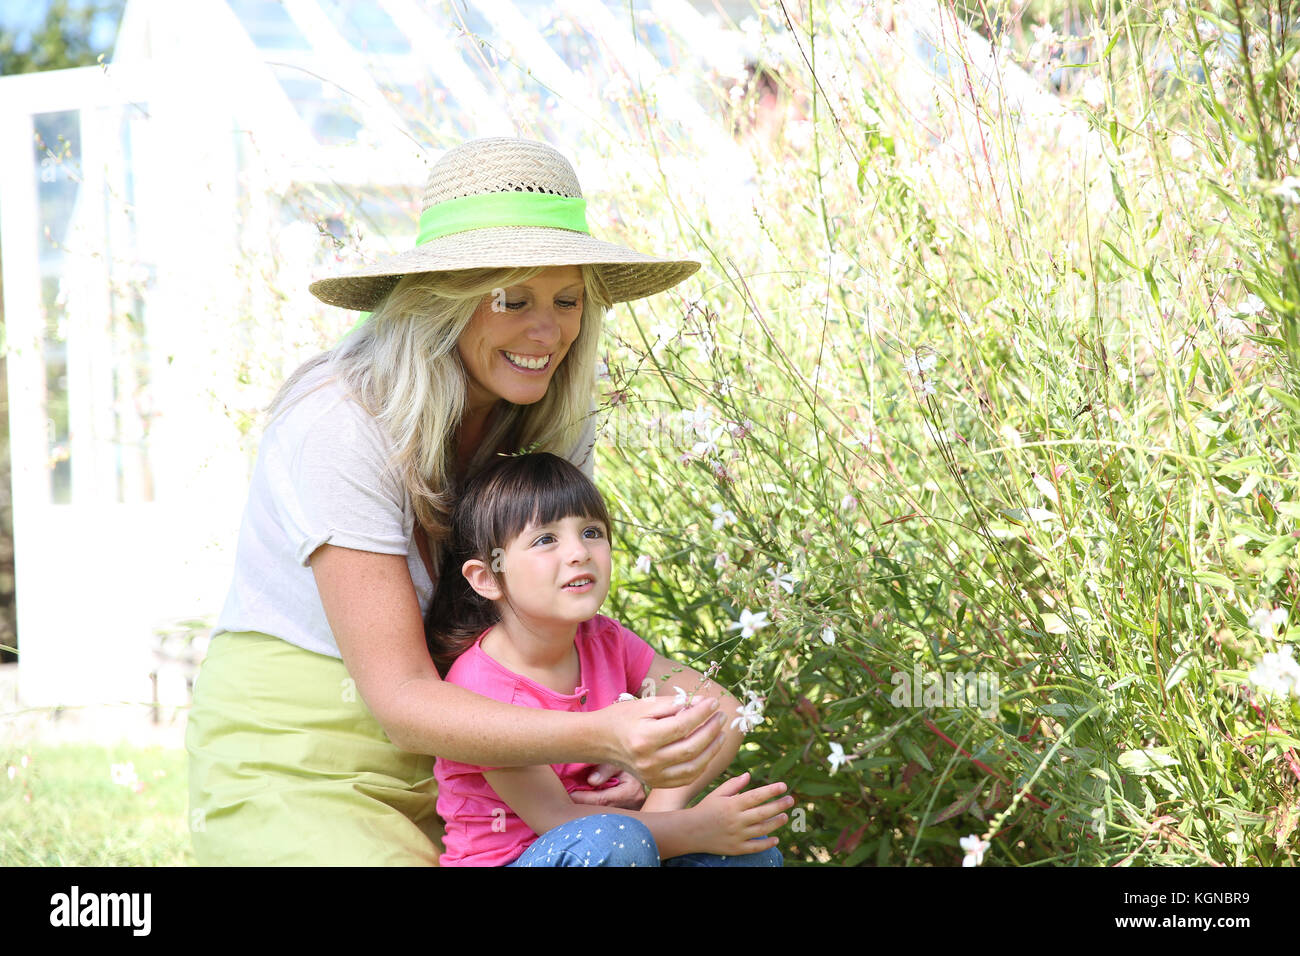 Mother and daughter having fun in aromatic garden - Stock Image